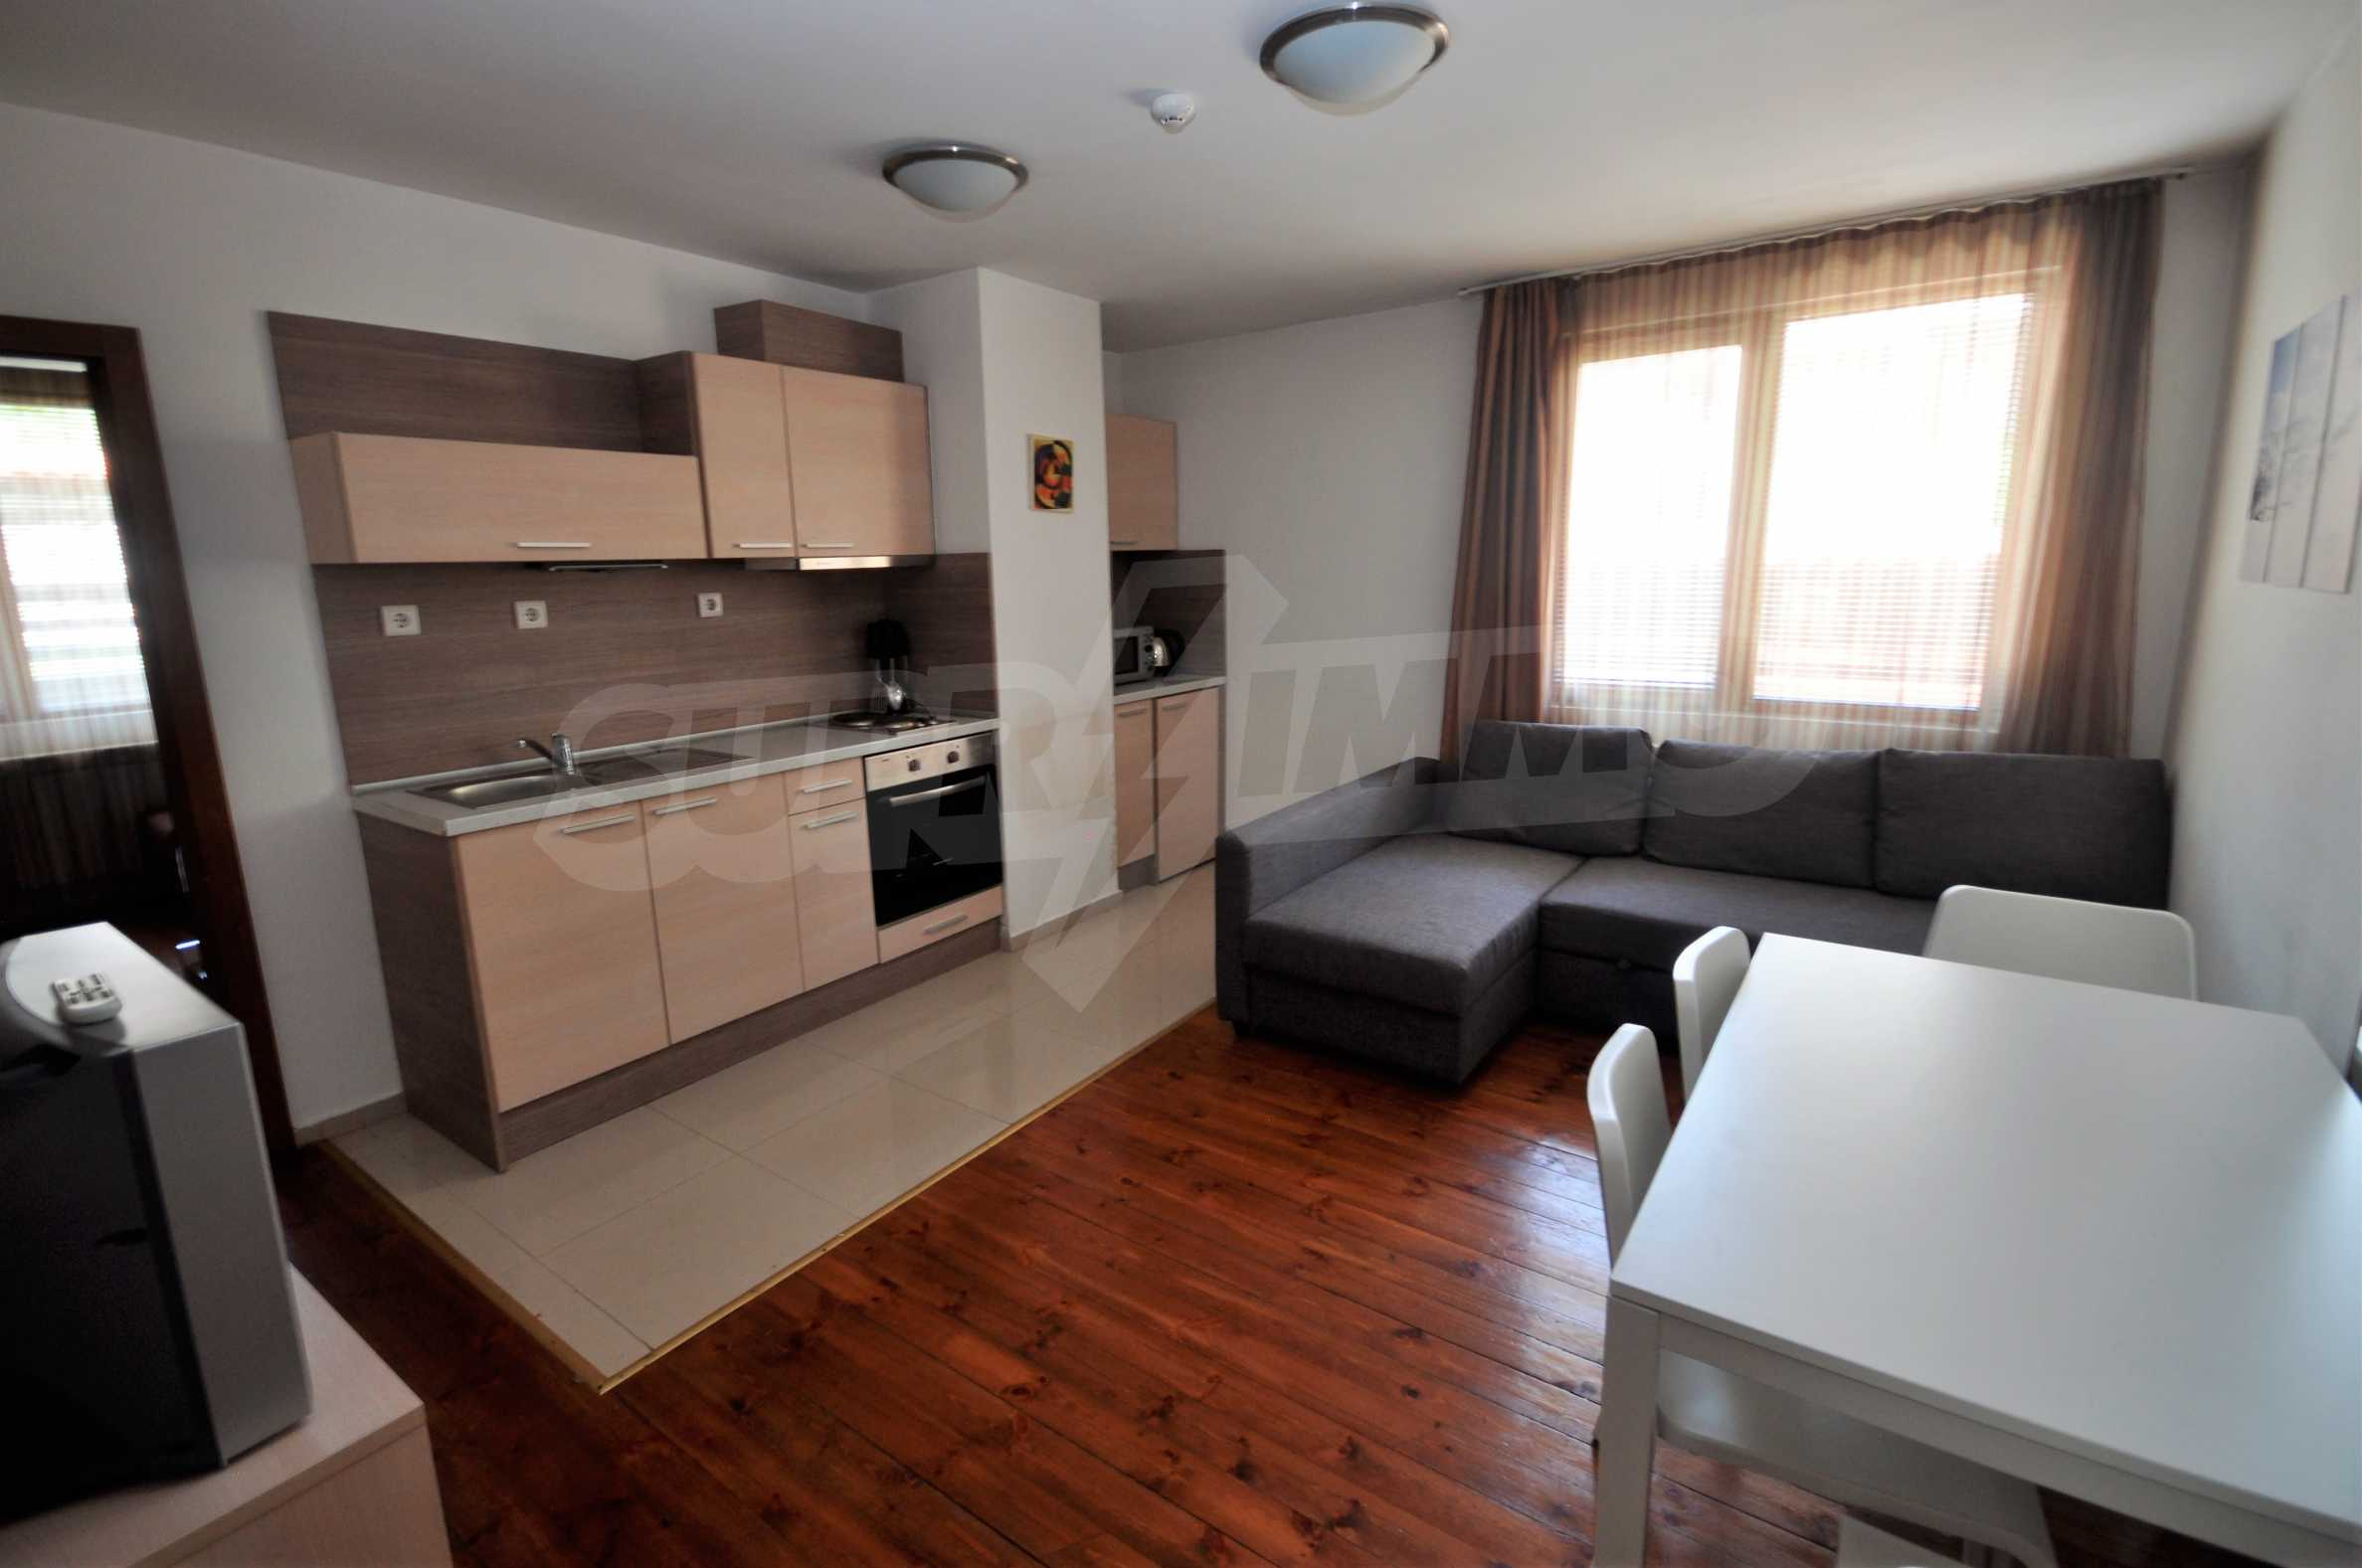 One bedroom apartment meters from the lift in the town of Bansko